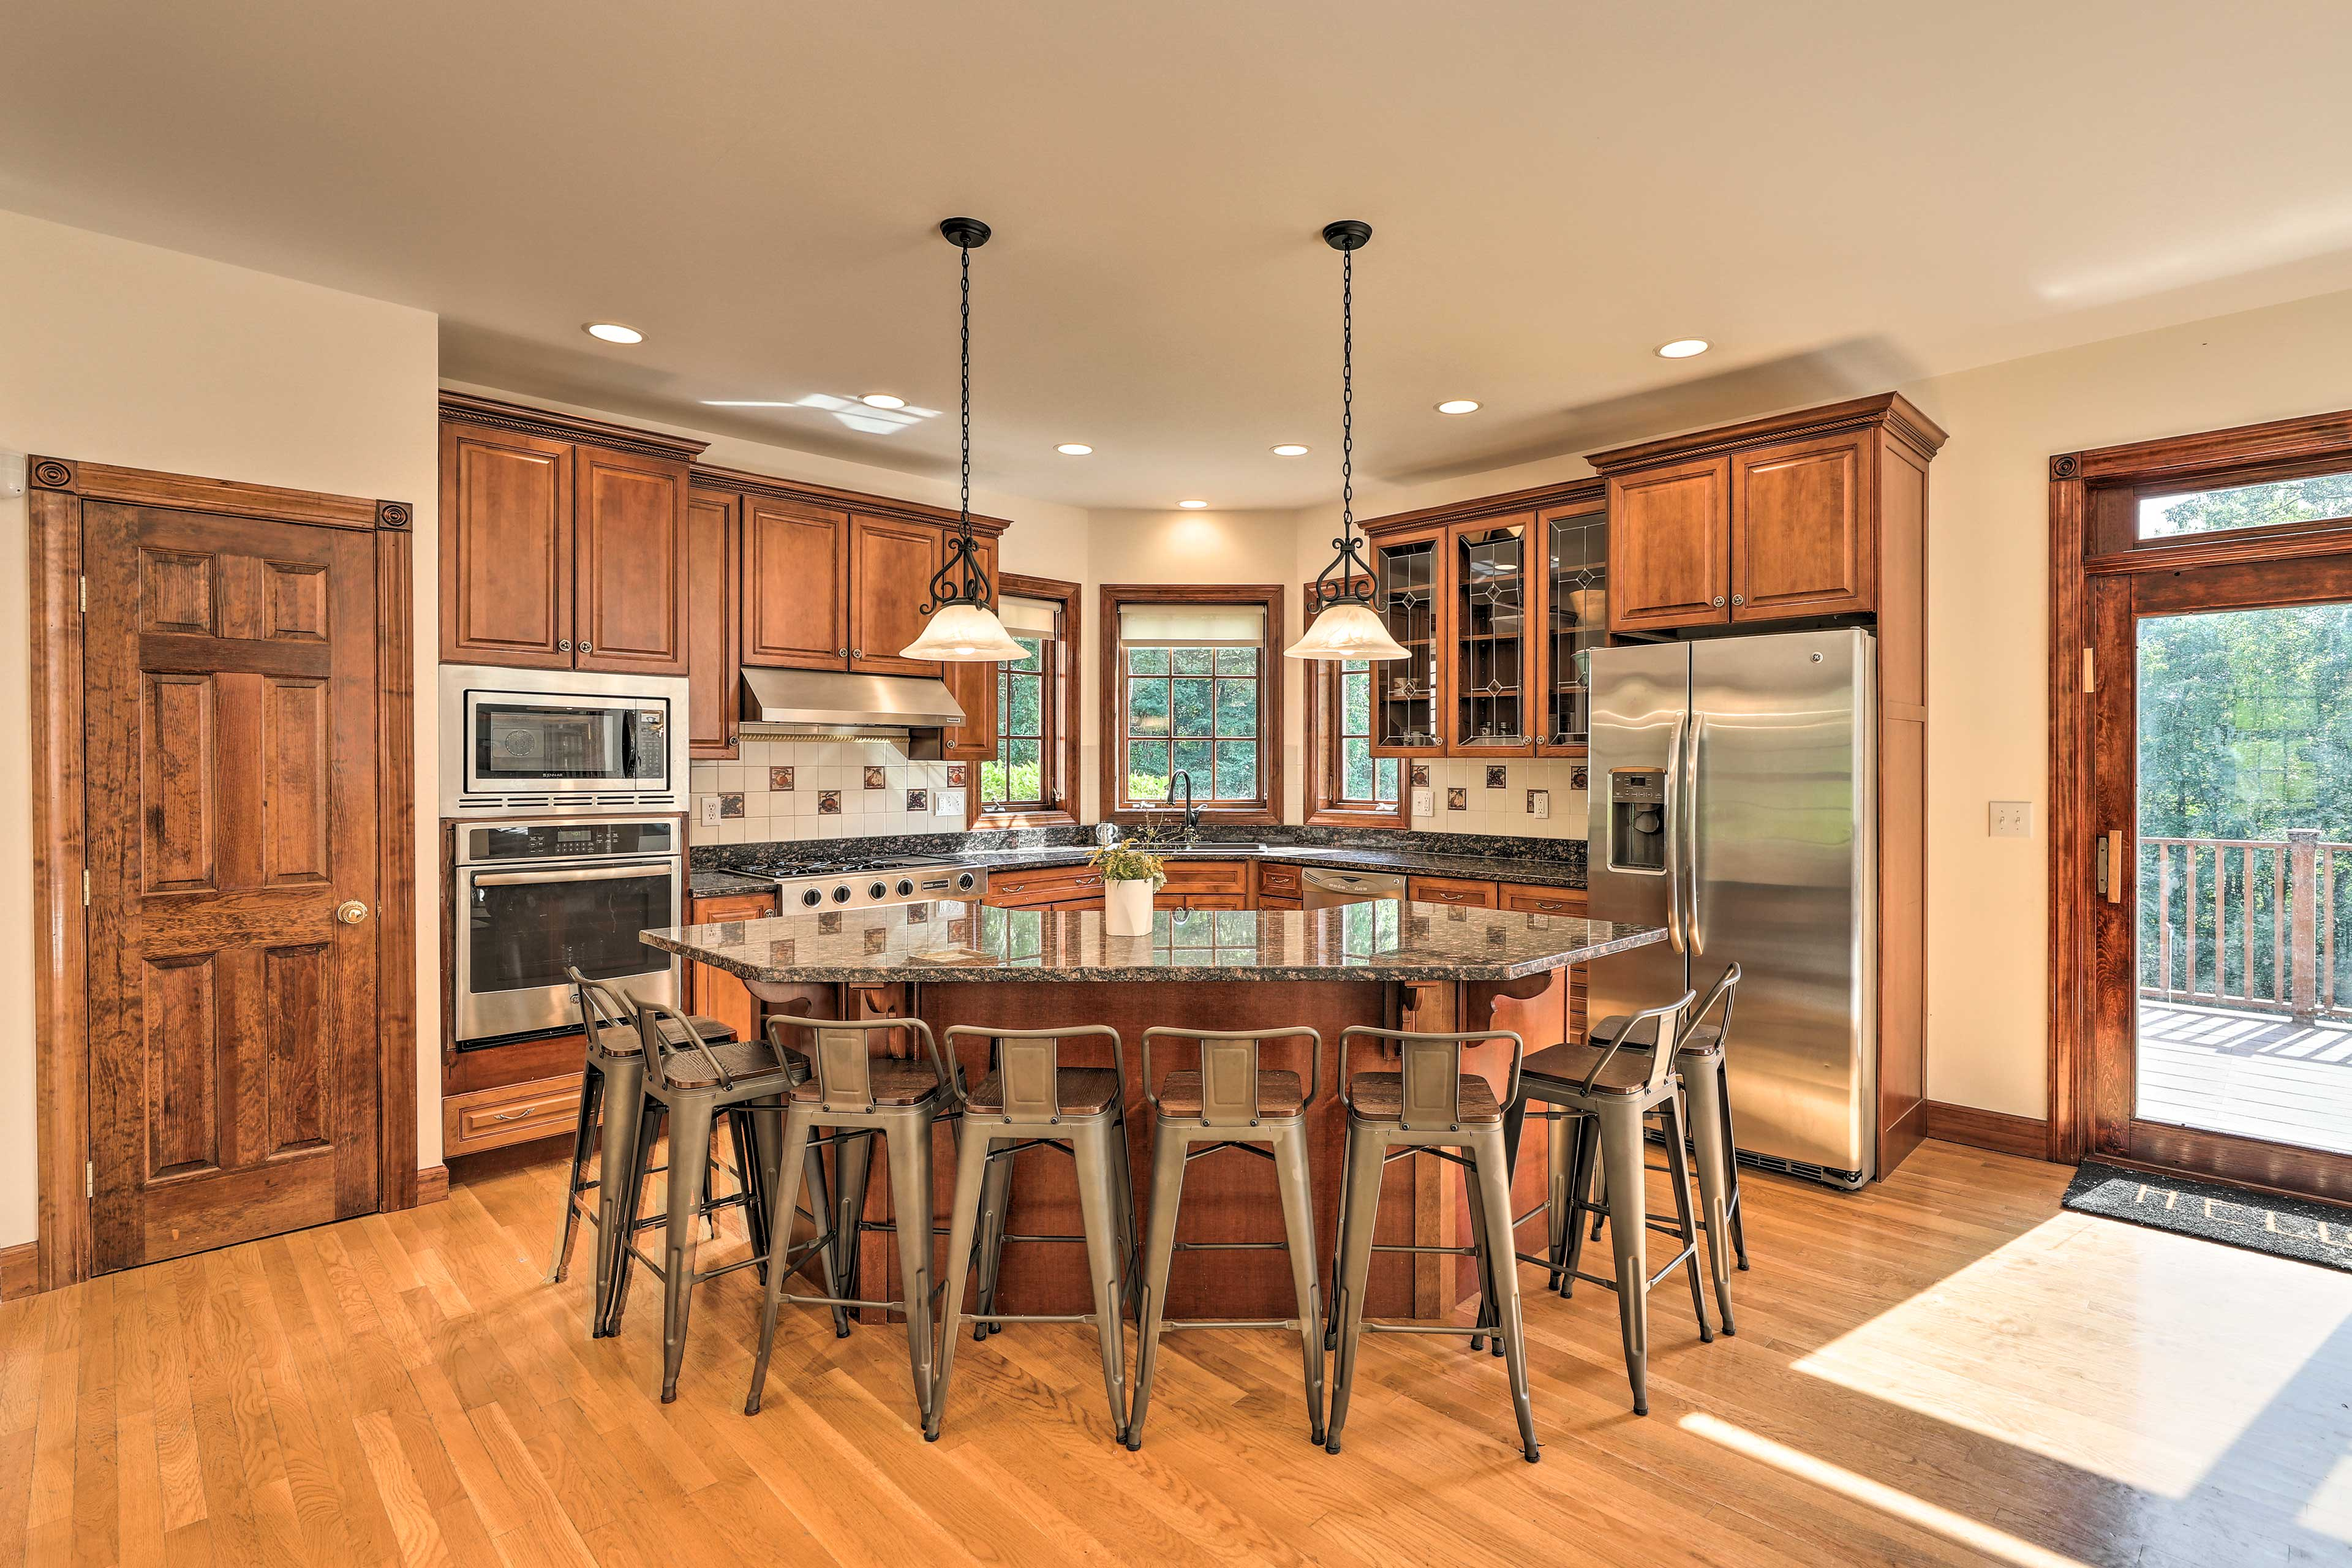 The gourmet kitchen is equipped with all the essential amenities.